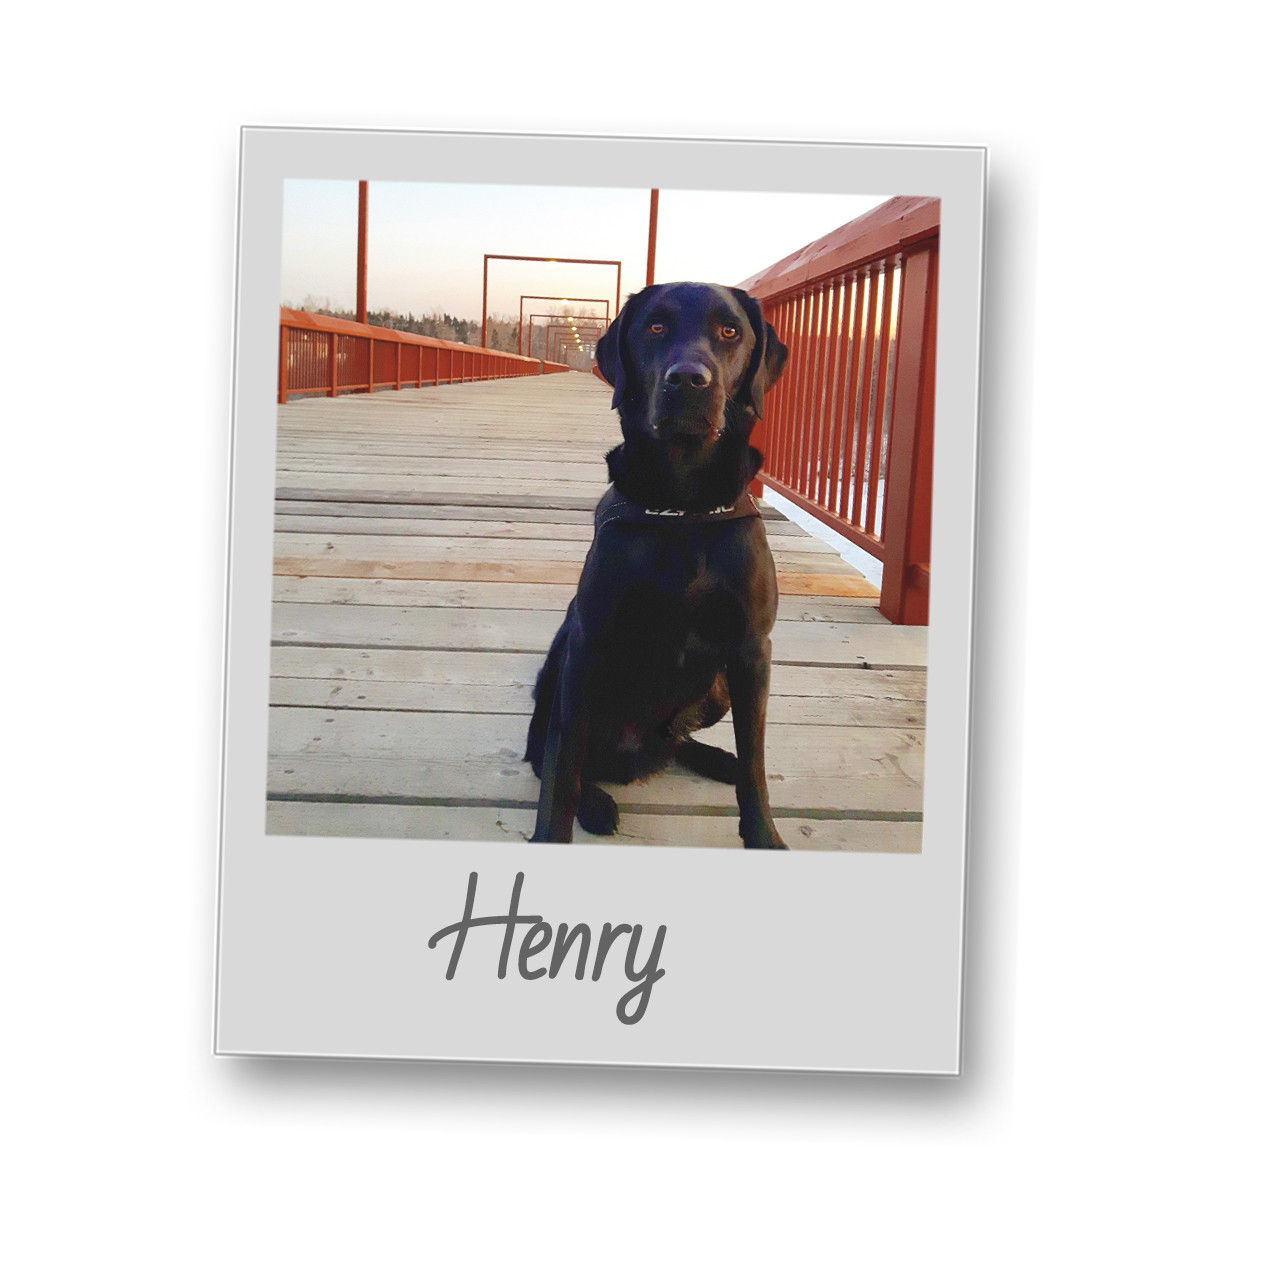 Henry   polaroid pets   resize to 500x500